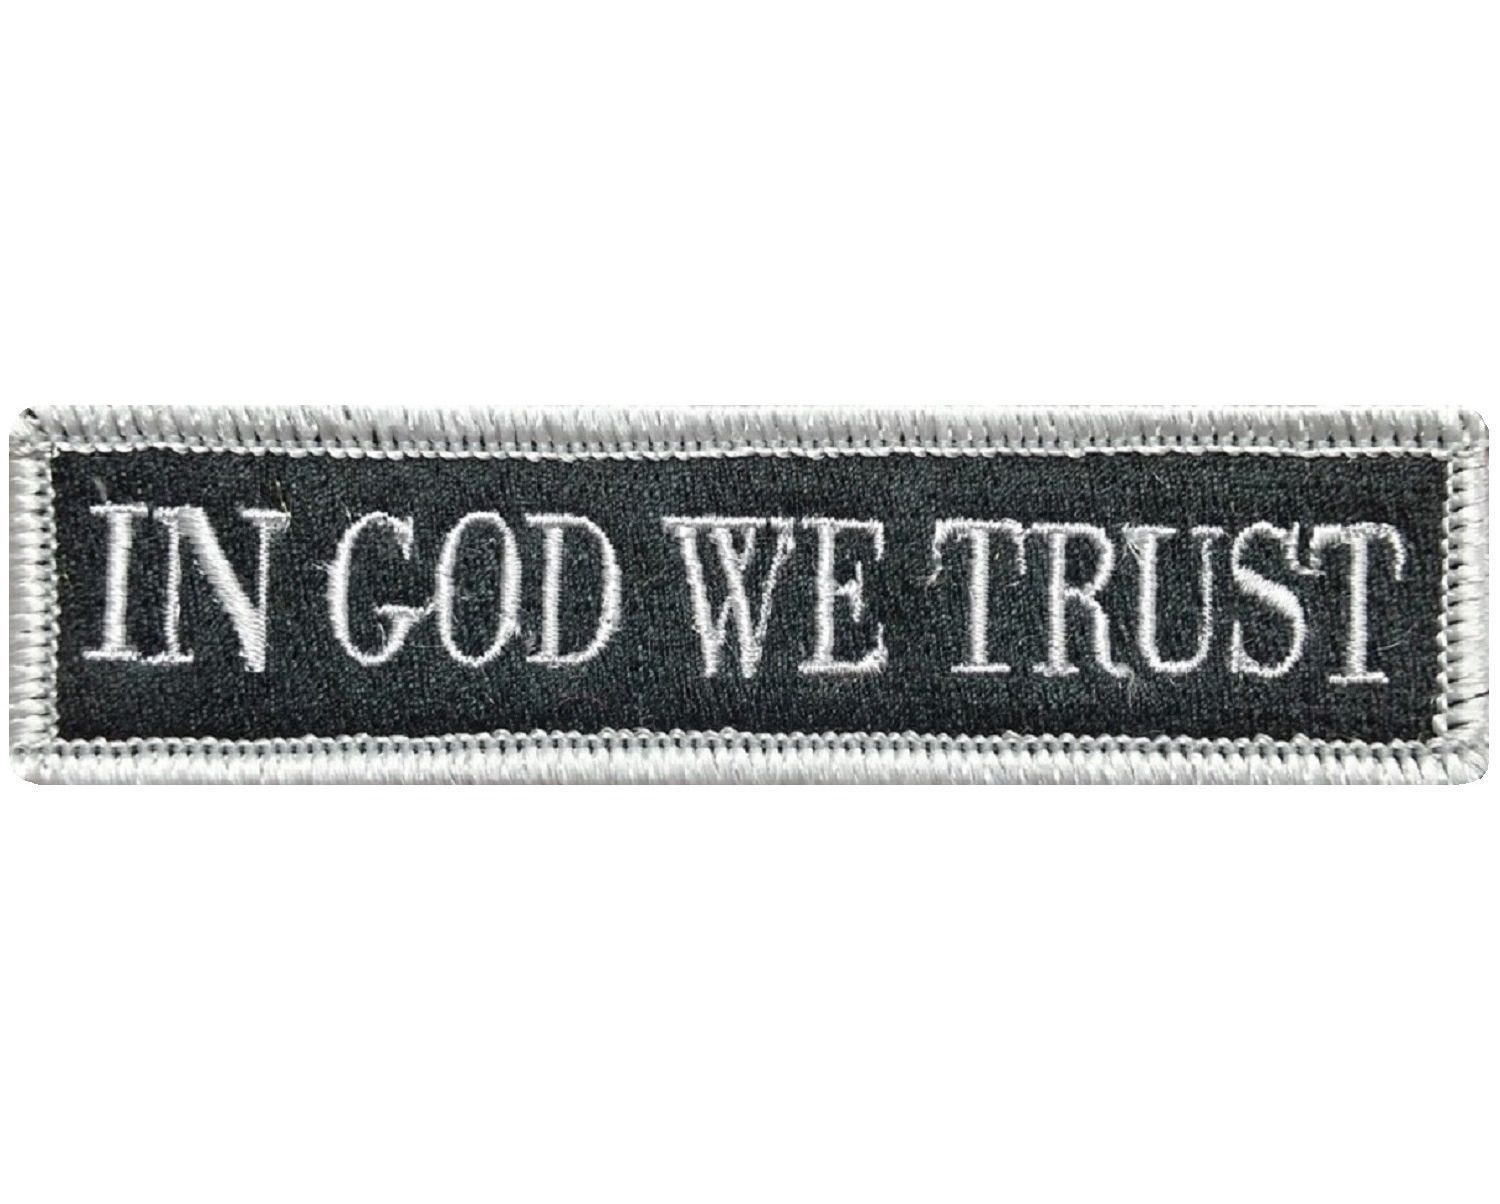 """V78 Tactical in god we trust patch Silver 1""""x3.75"""" Velcro hook *Made in USA*"""